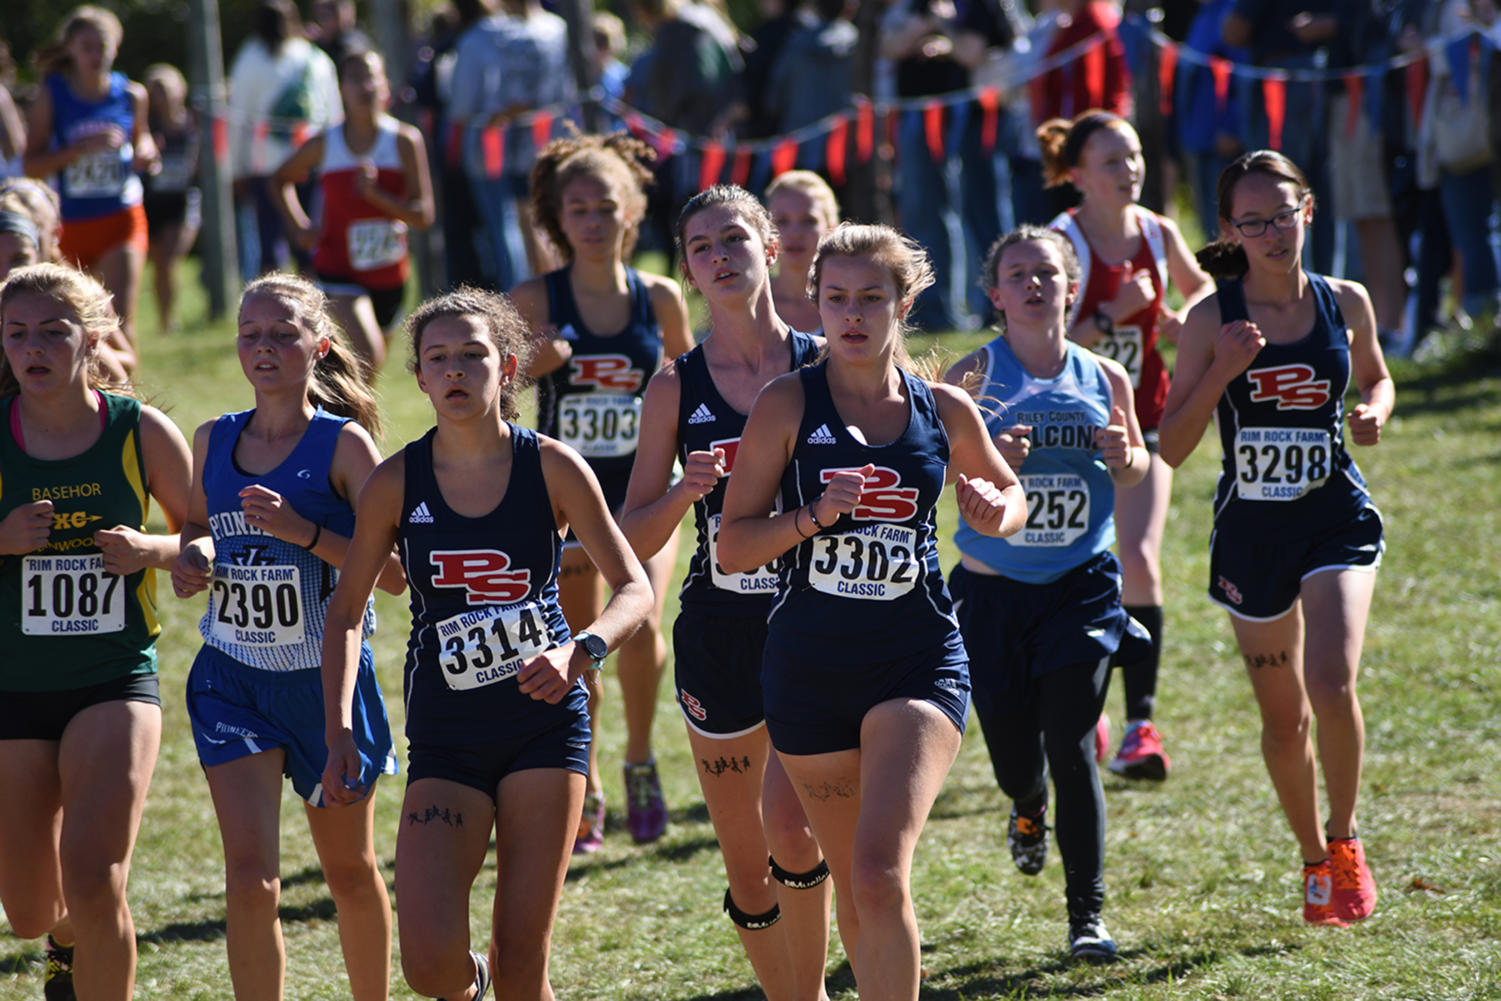 Juniors Vanessa Waidmann, Jordyn Haddrill and Sydney Hieken, and sophomores Mary Gordon and  Abigail Bernath run hard at the Rim Rock Farm Classic in Lawrence, Kansas Sept. 22.